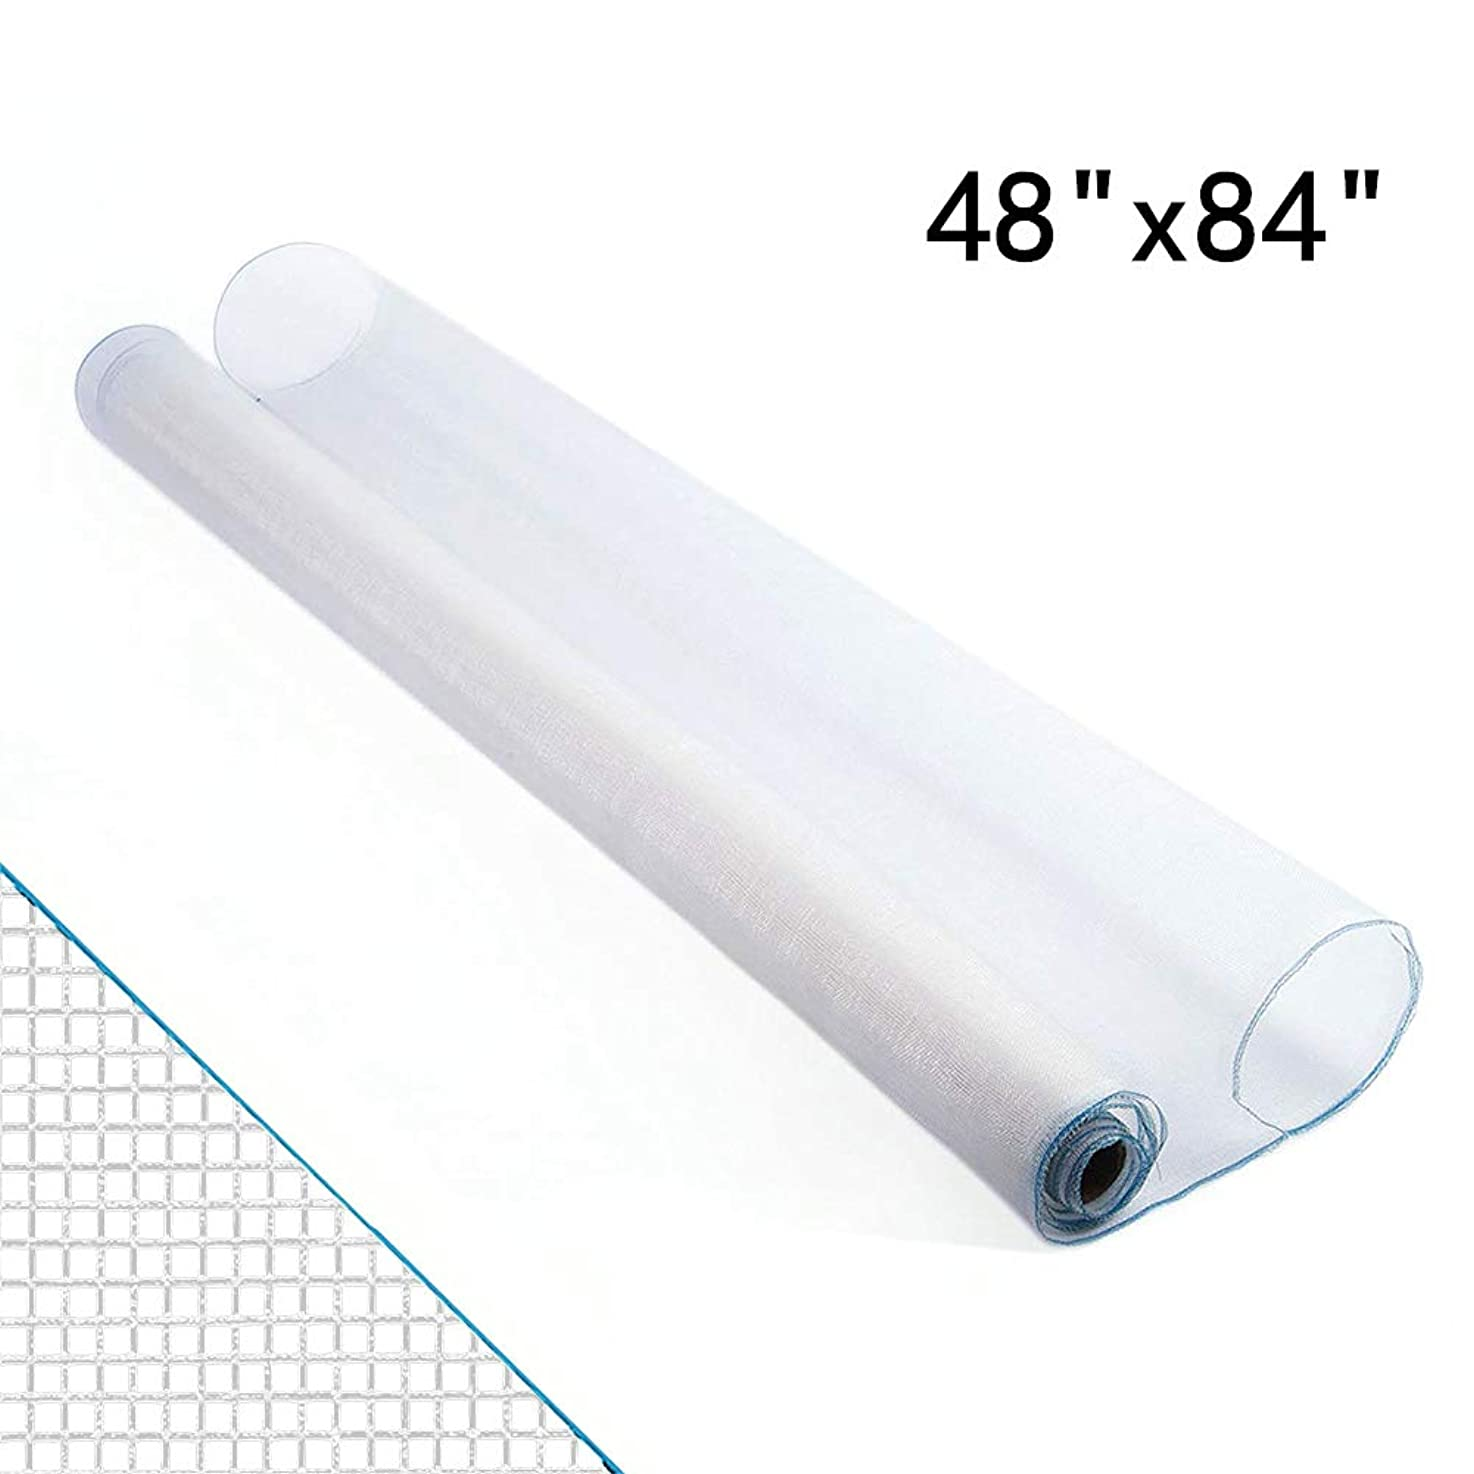 Shatex Roll Window Screen Mesh, DIY Nylon Screen Replacement Mesh Fabric, Anti-Mosquito/Insect Barrier, 48